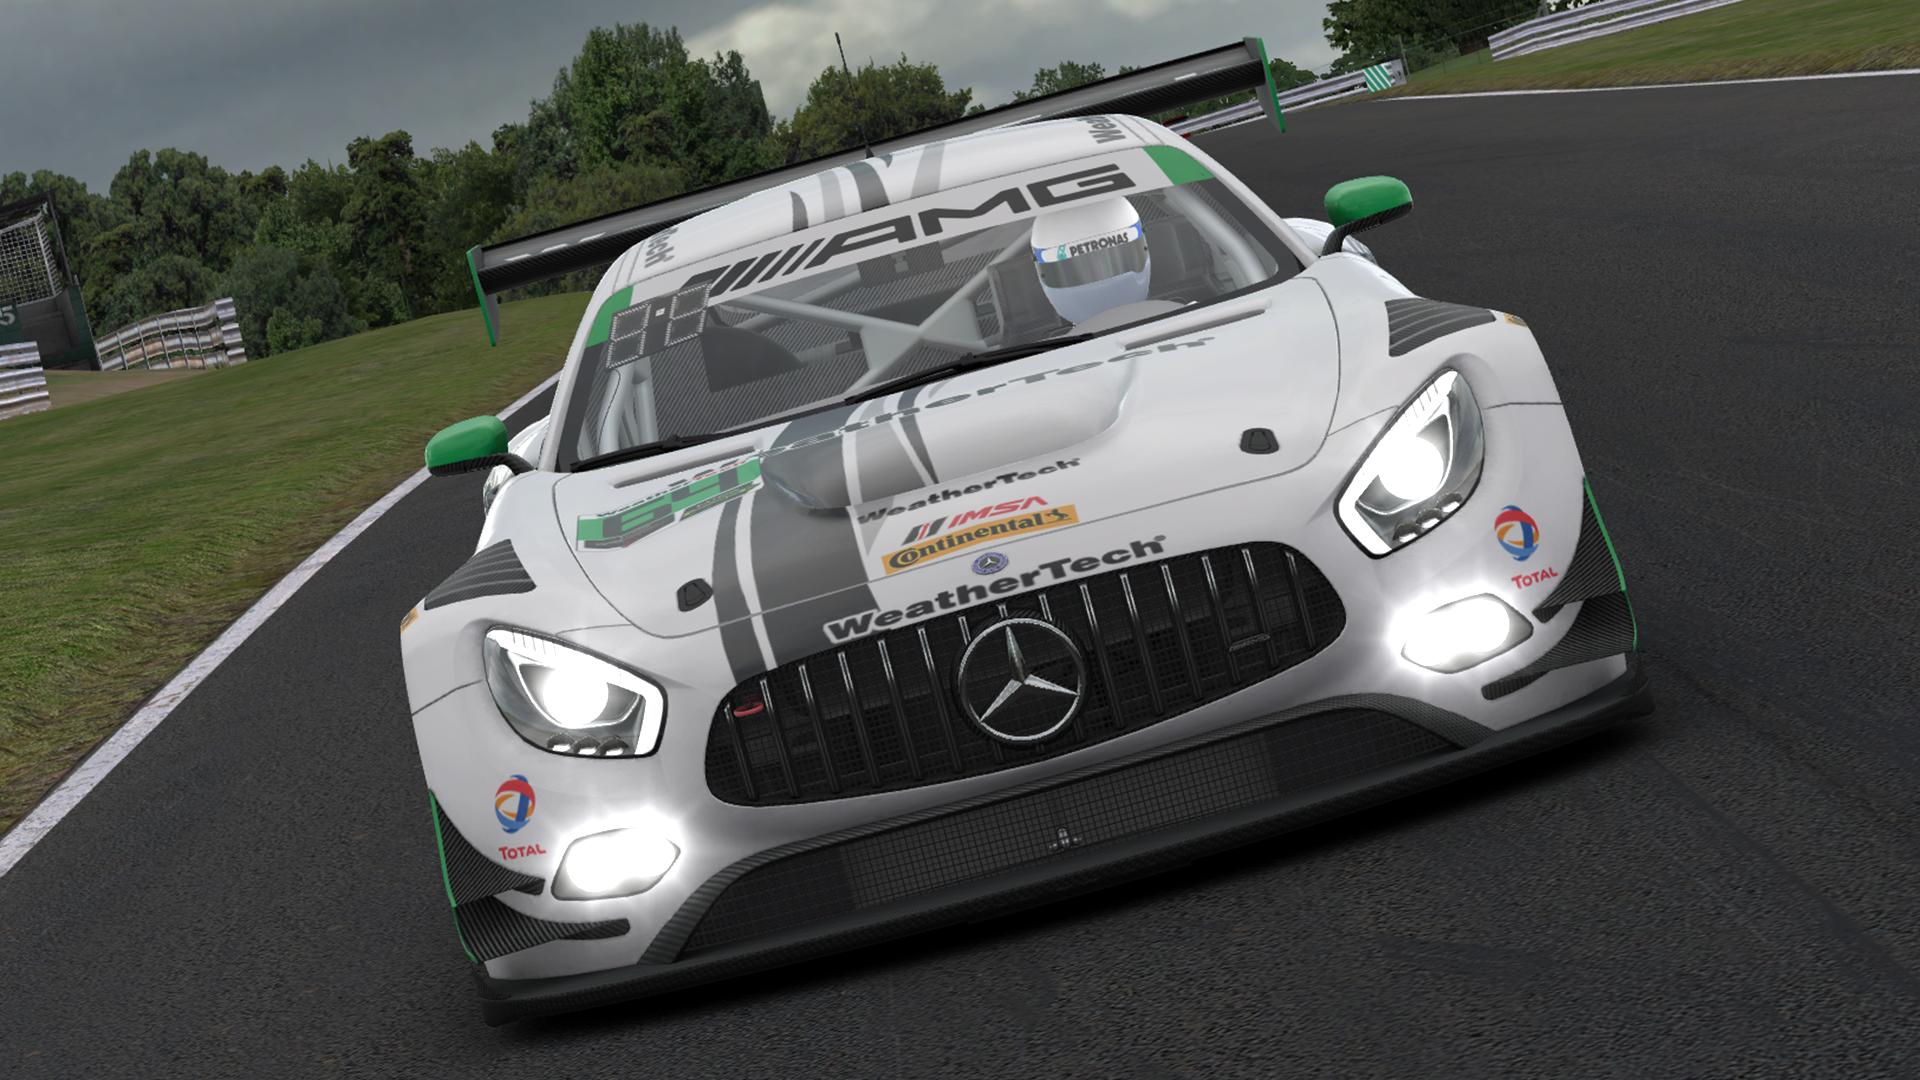 Preview of #50 Riley Motorsports Mercedes AMG GT3 (IMSA 2017) by Justin S Davis